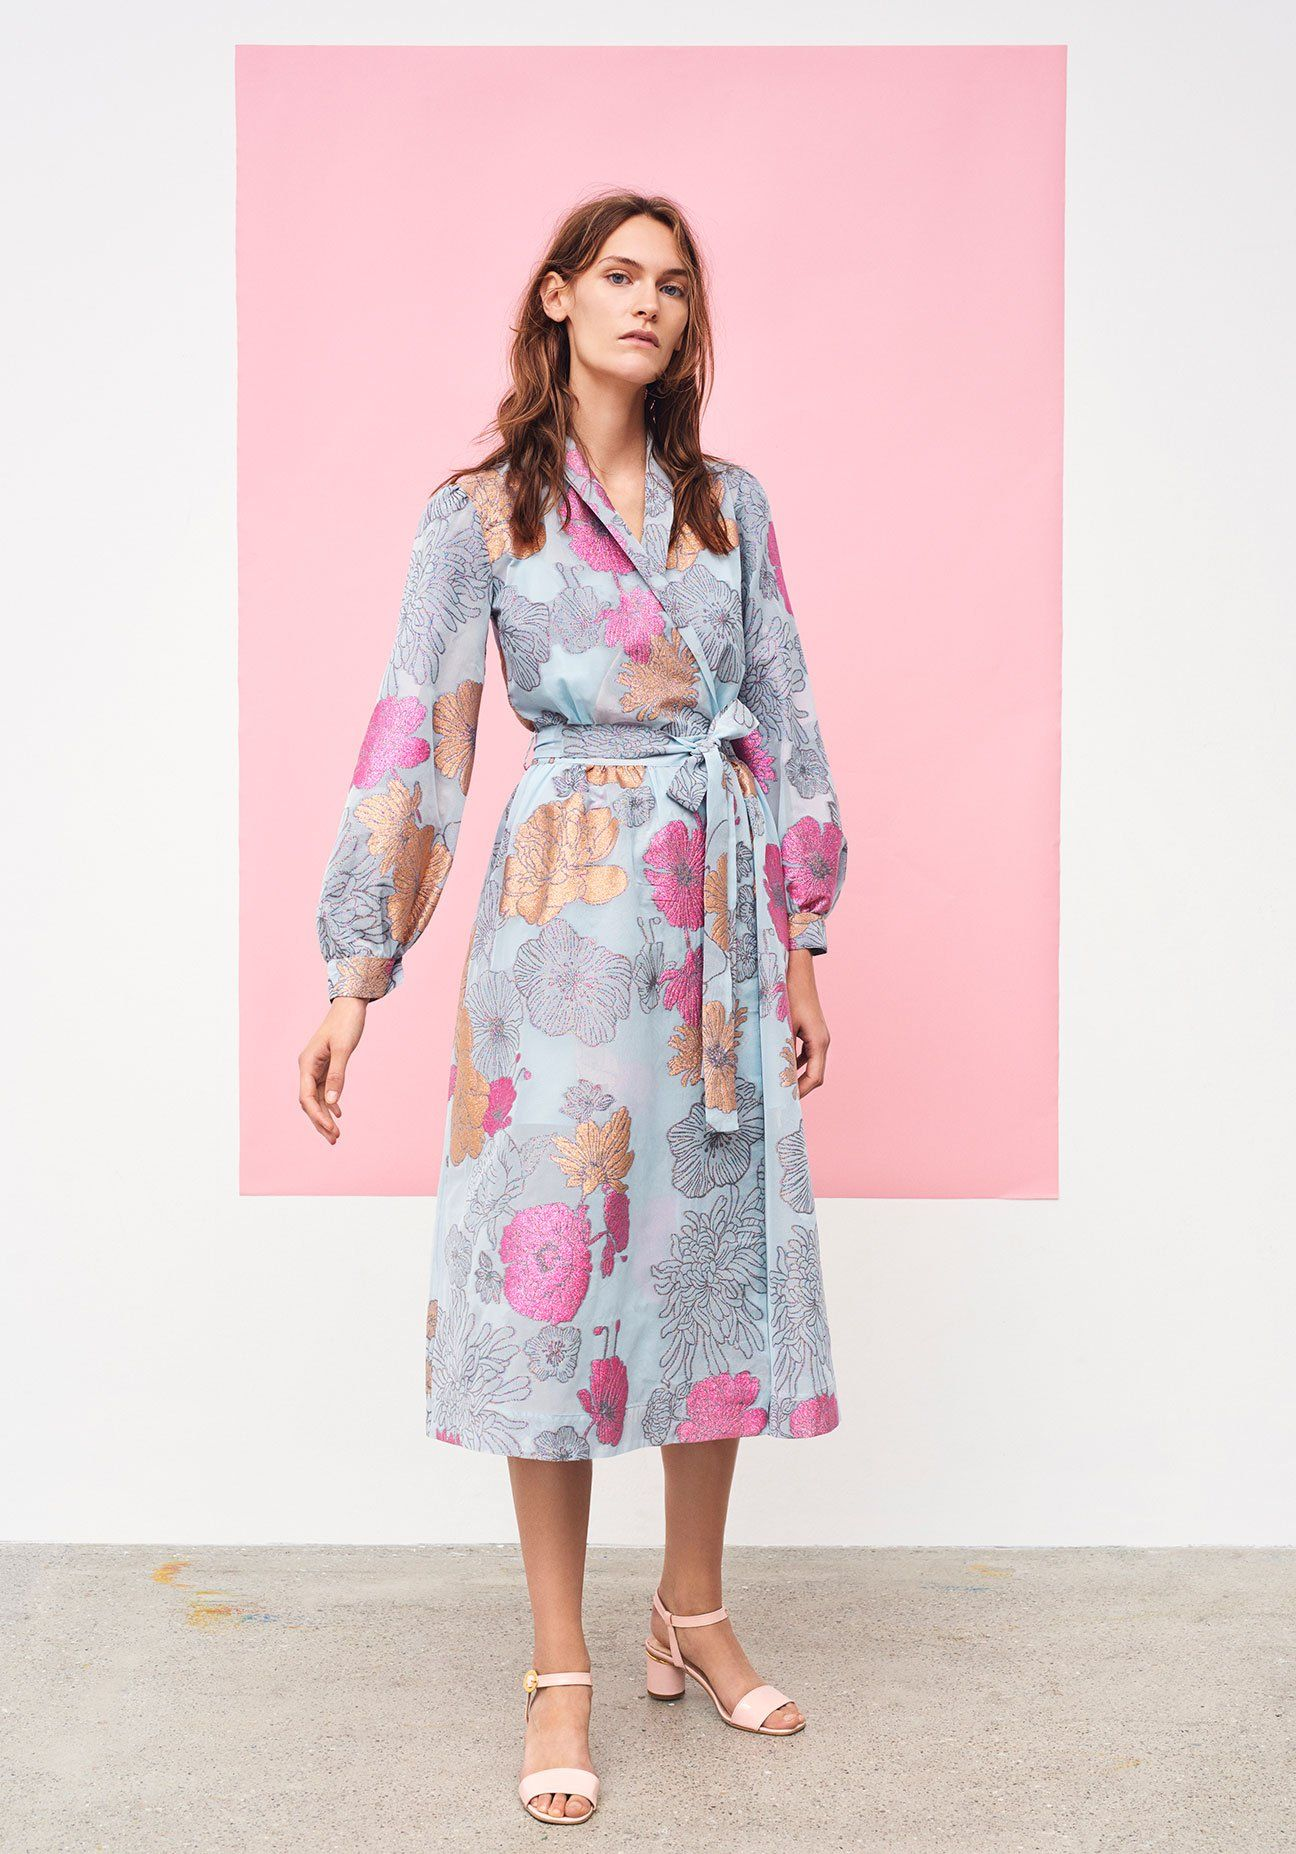 72614ea4f30 Get inspired by the Pre Fall 2018 lookbook - Stine Goya | Dresses in ...